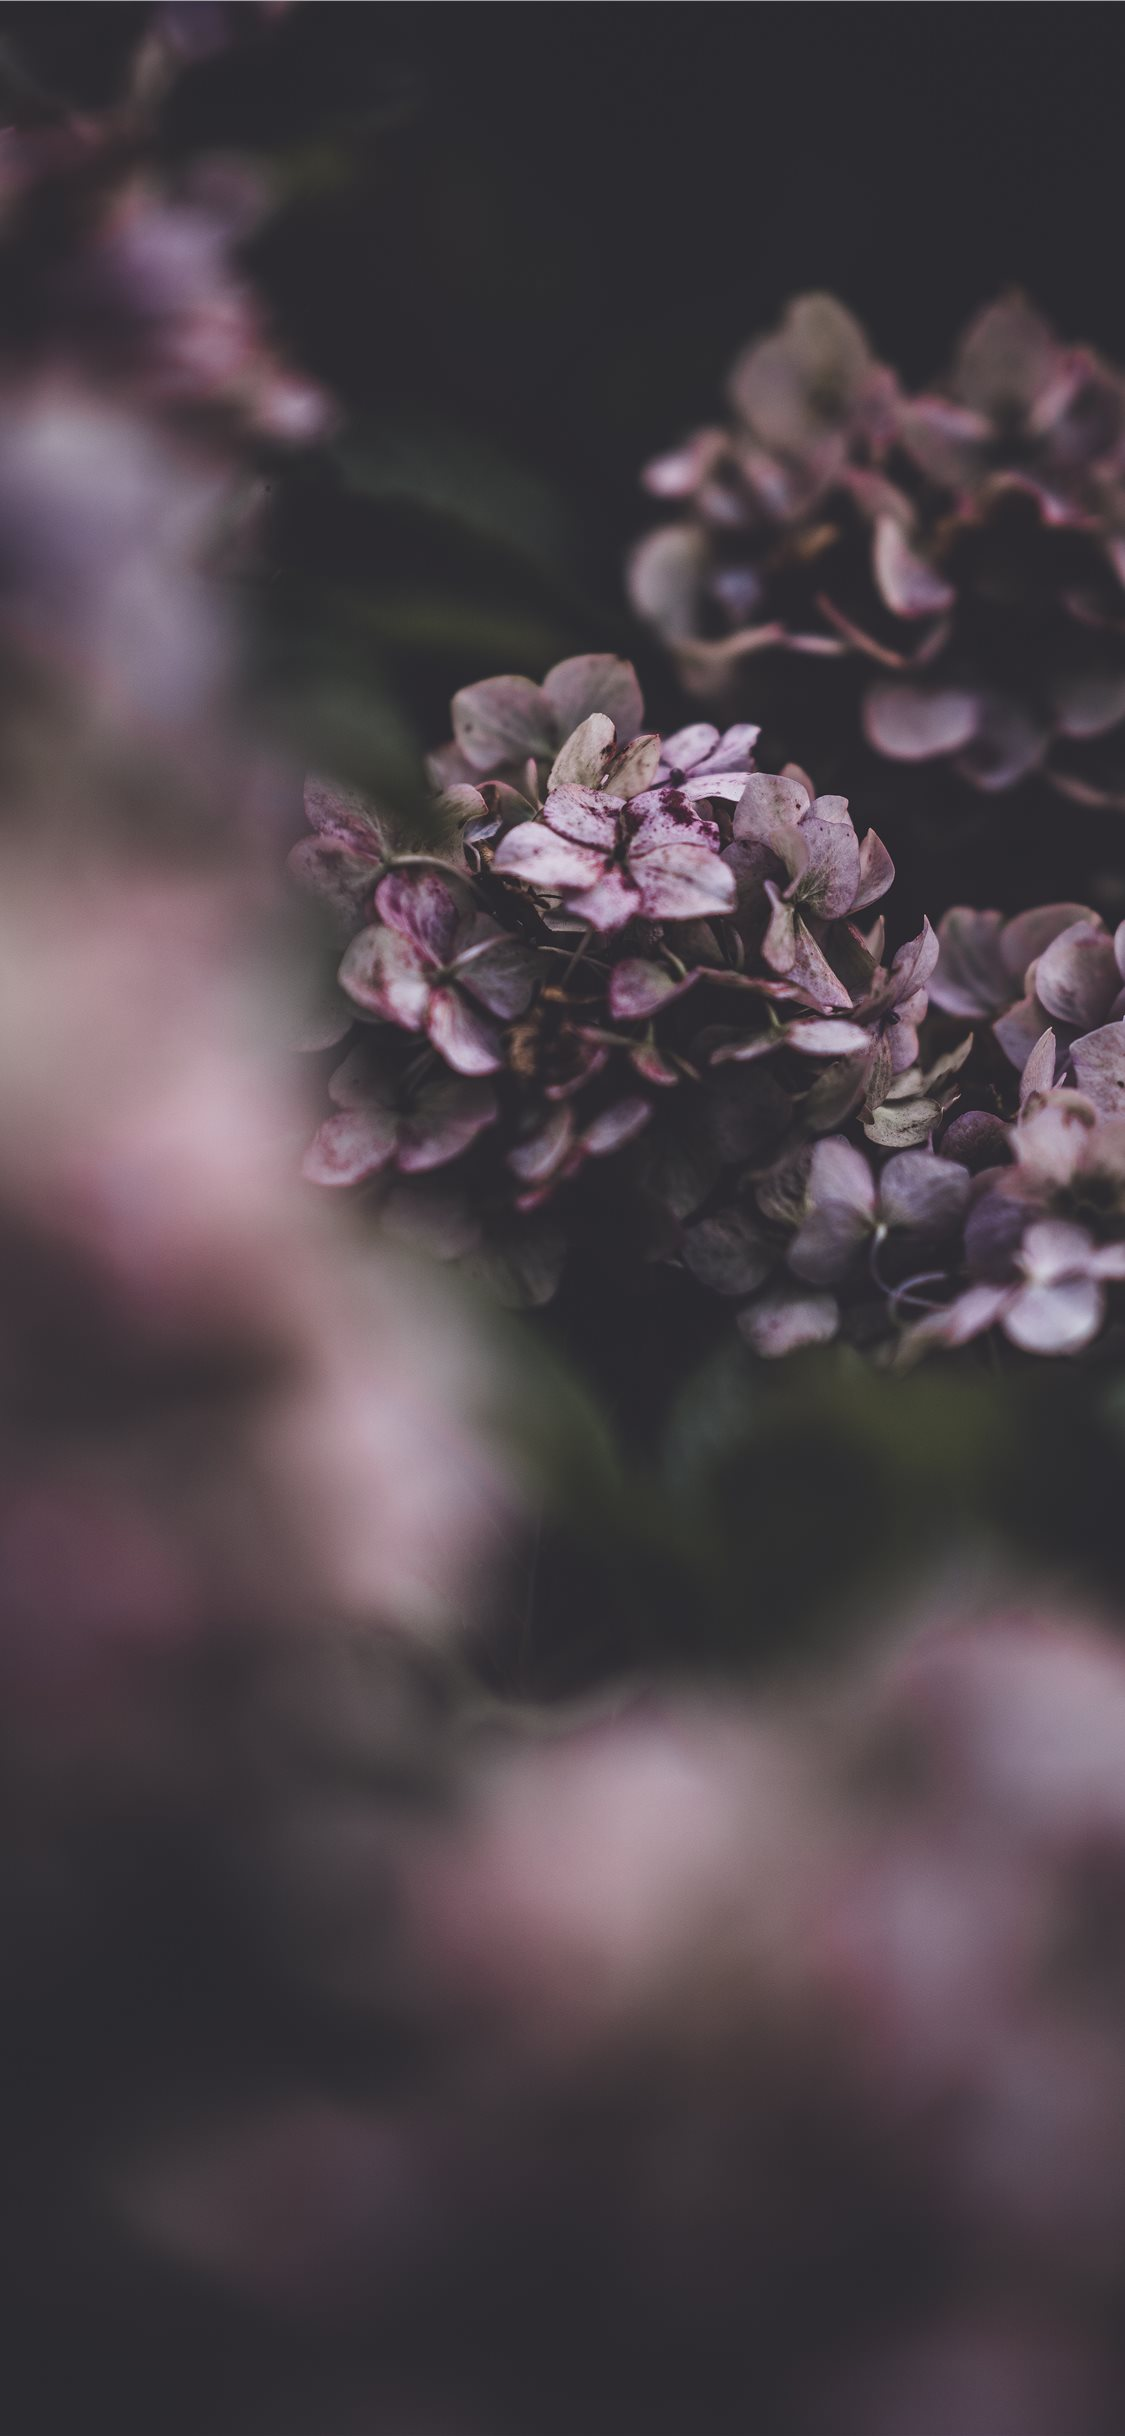 Delicate Hydrangea Flower Fragility In Nature Iphone X Wallpaper